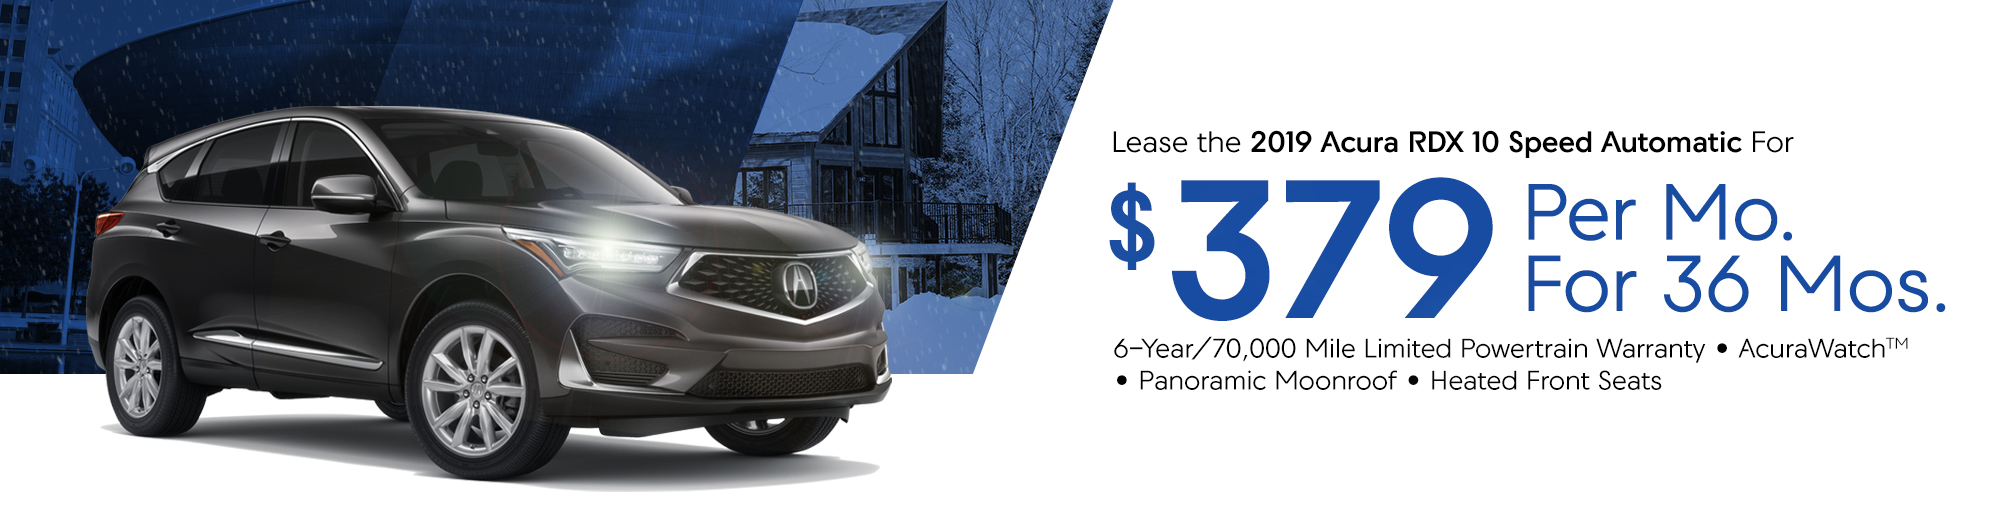 Lease the 2019 Acura RDX 10 Speed Automatic For $379 Per Month For 36 Months. Features: 6-Year/70,000 Mile Limited Powertrain Warranty • AcuraWatch™ • Panoramic Moonroof • Heated Front Seats